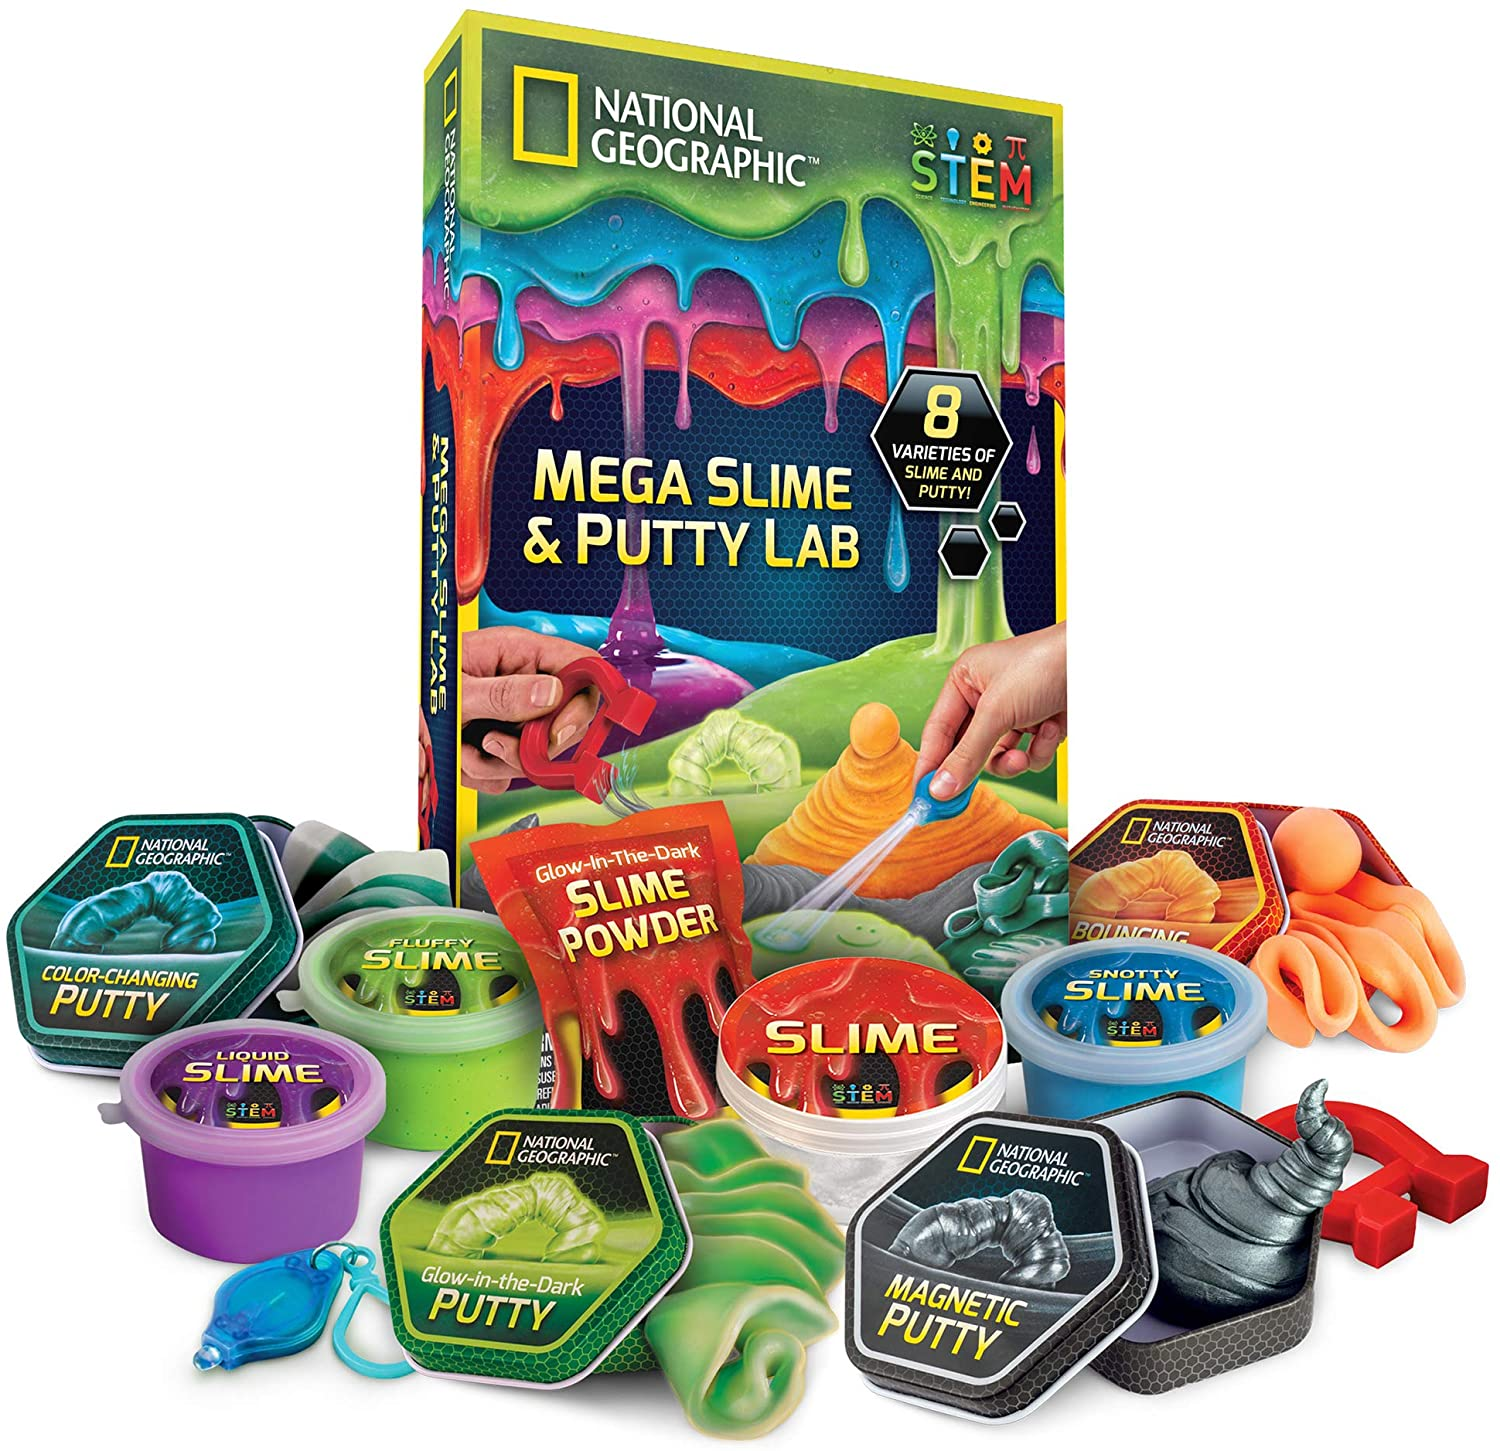 NATIONAL GEOGRAPHIC Mega Slime Kit & Putty Lab - 4 Types of Amazing Slime For Girls & Boys Plus 4 Types of Putty Including Magnetic Putty, Fluffy Slime & Glow-in-the-Dark Putty